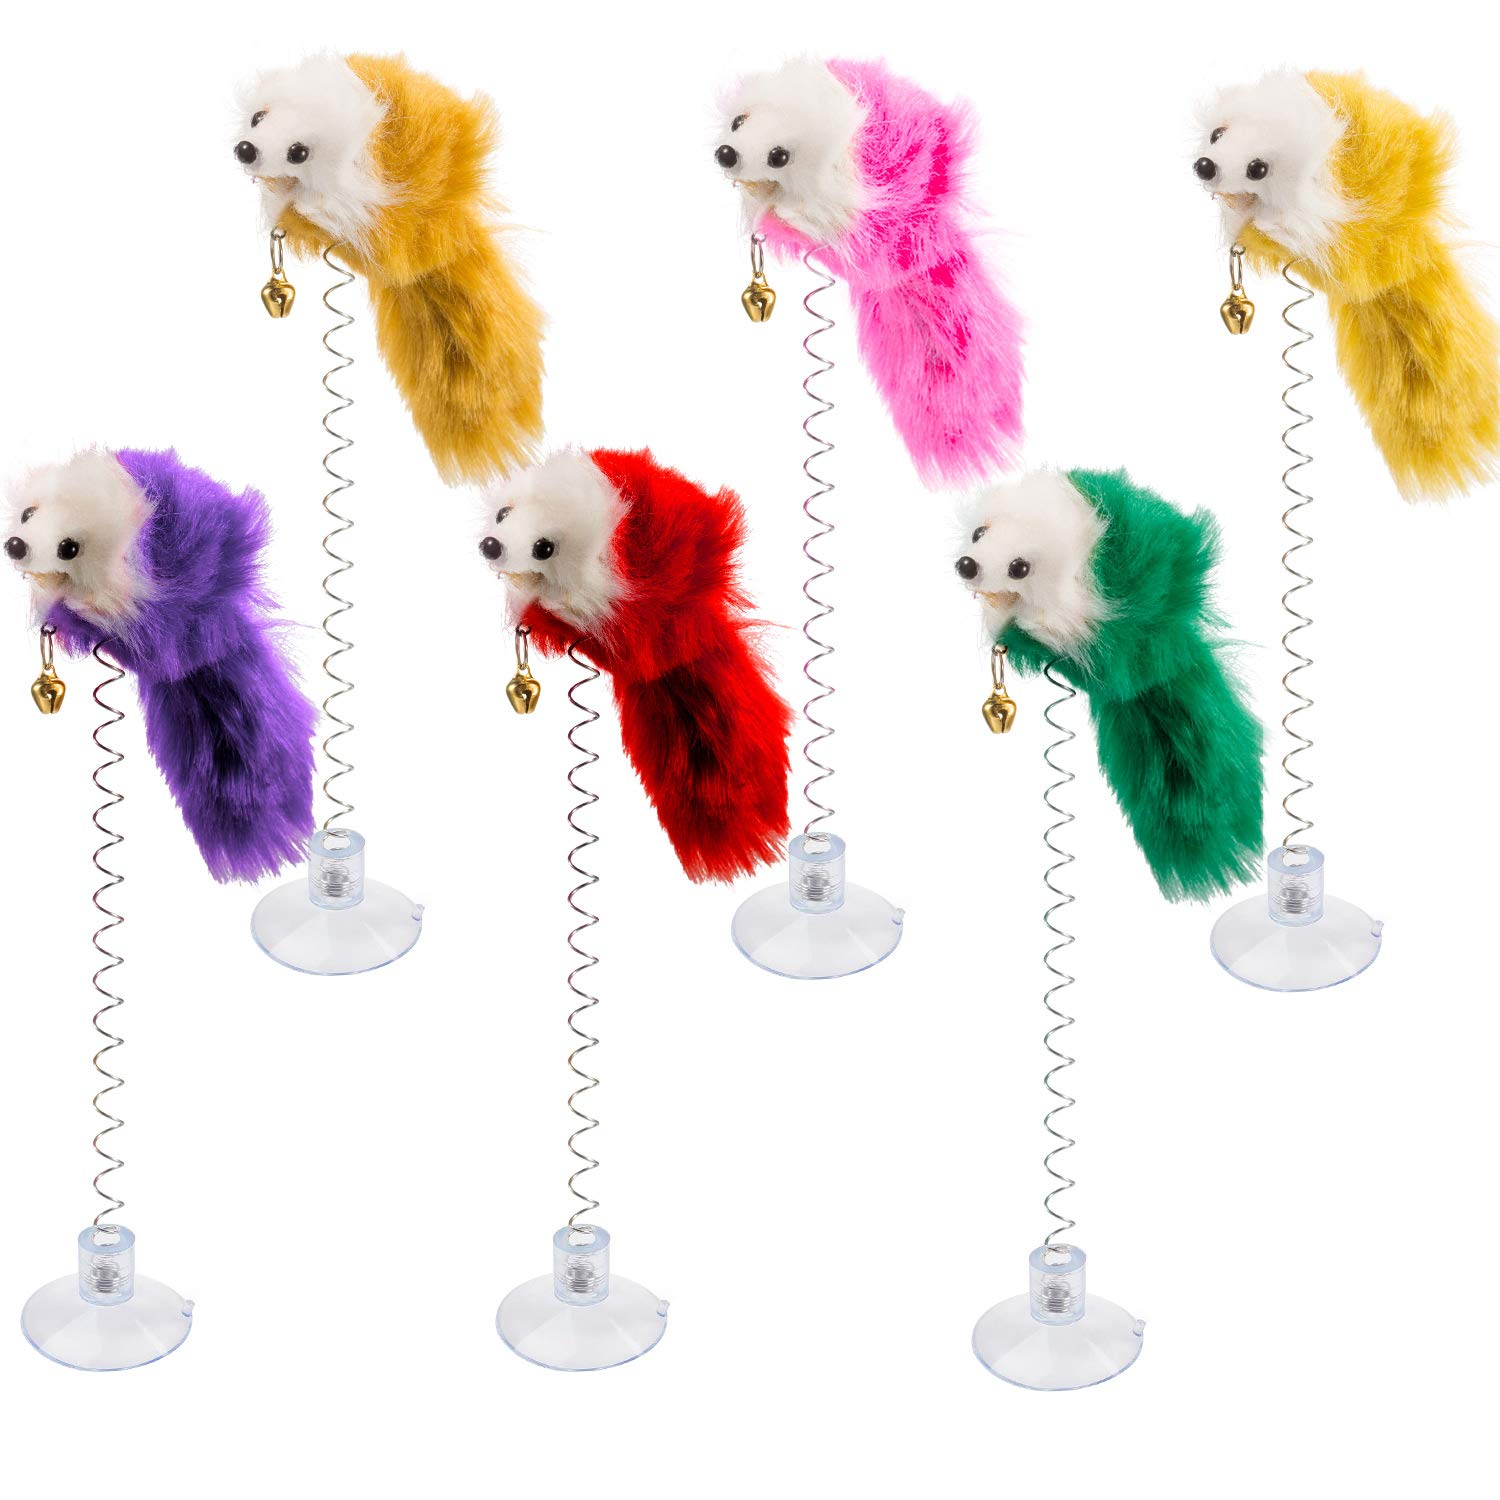 Tatuo 6 Pieces Cat Toys, Mouse Toys Cats, Furry Pet Cat Toys, Cat Teaser Wand Bell